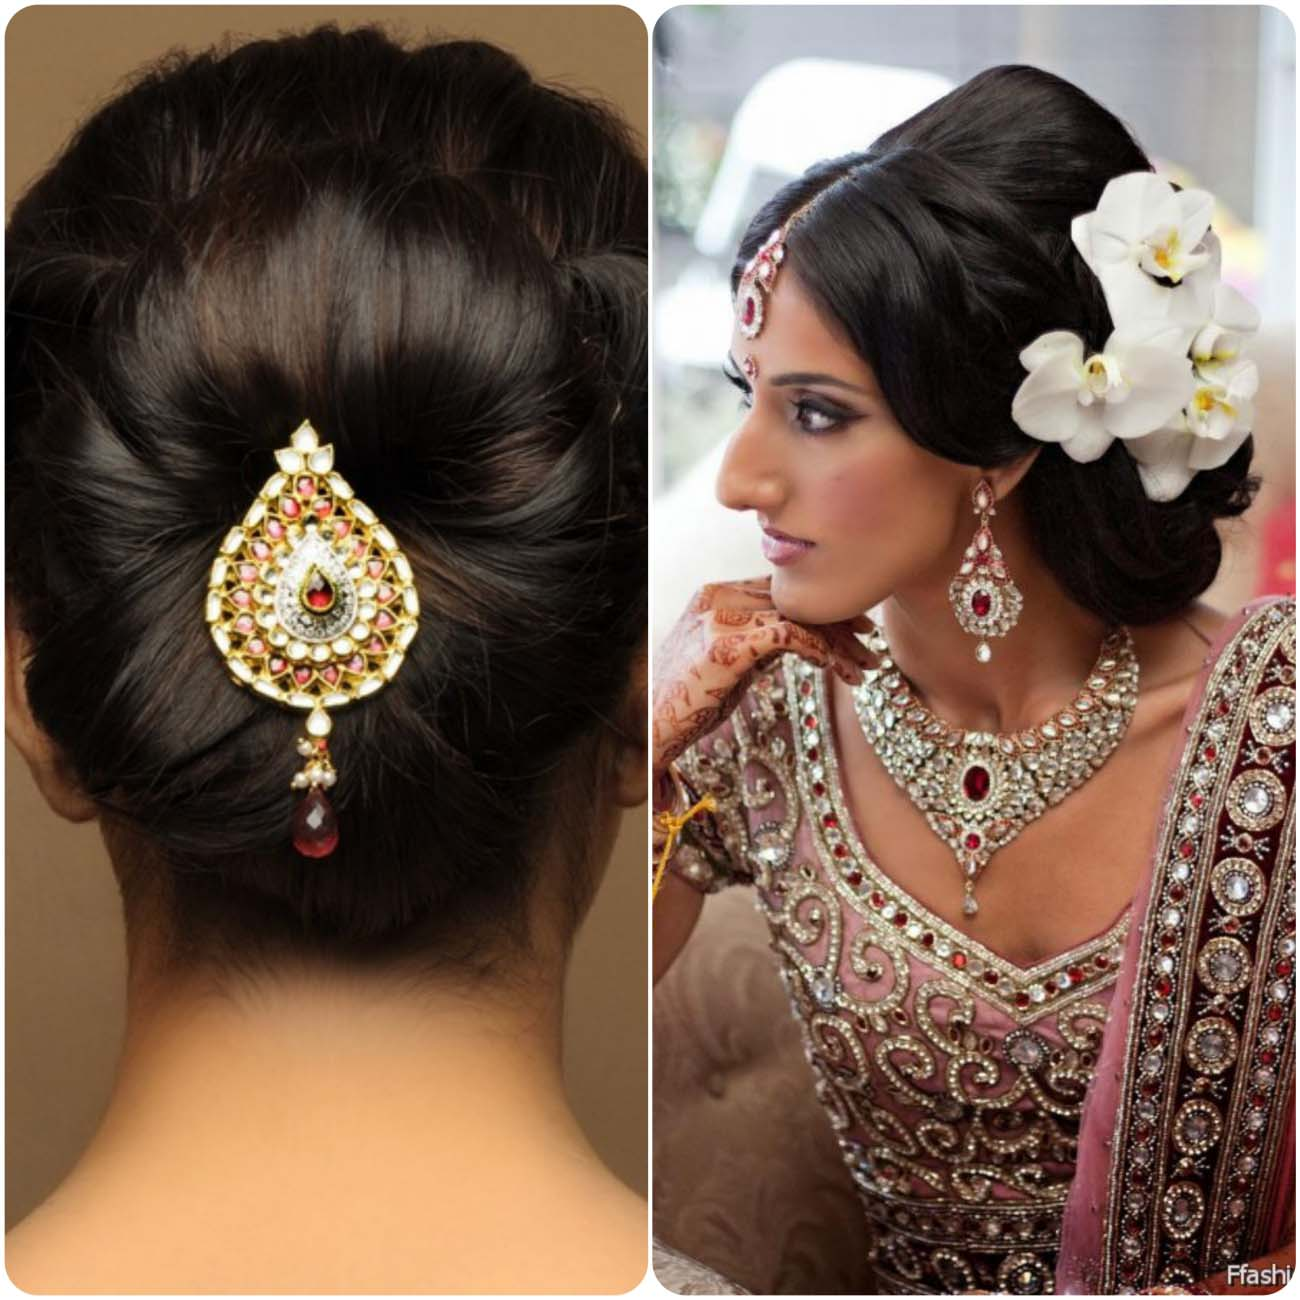 women fashion girls dress indian native wedding hair